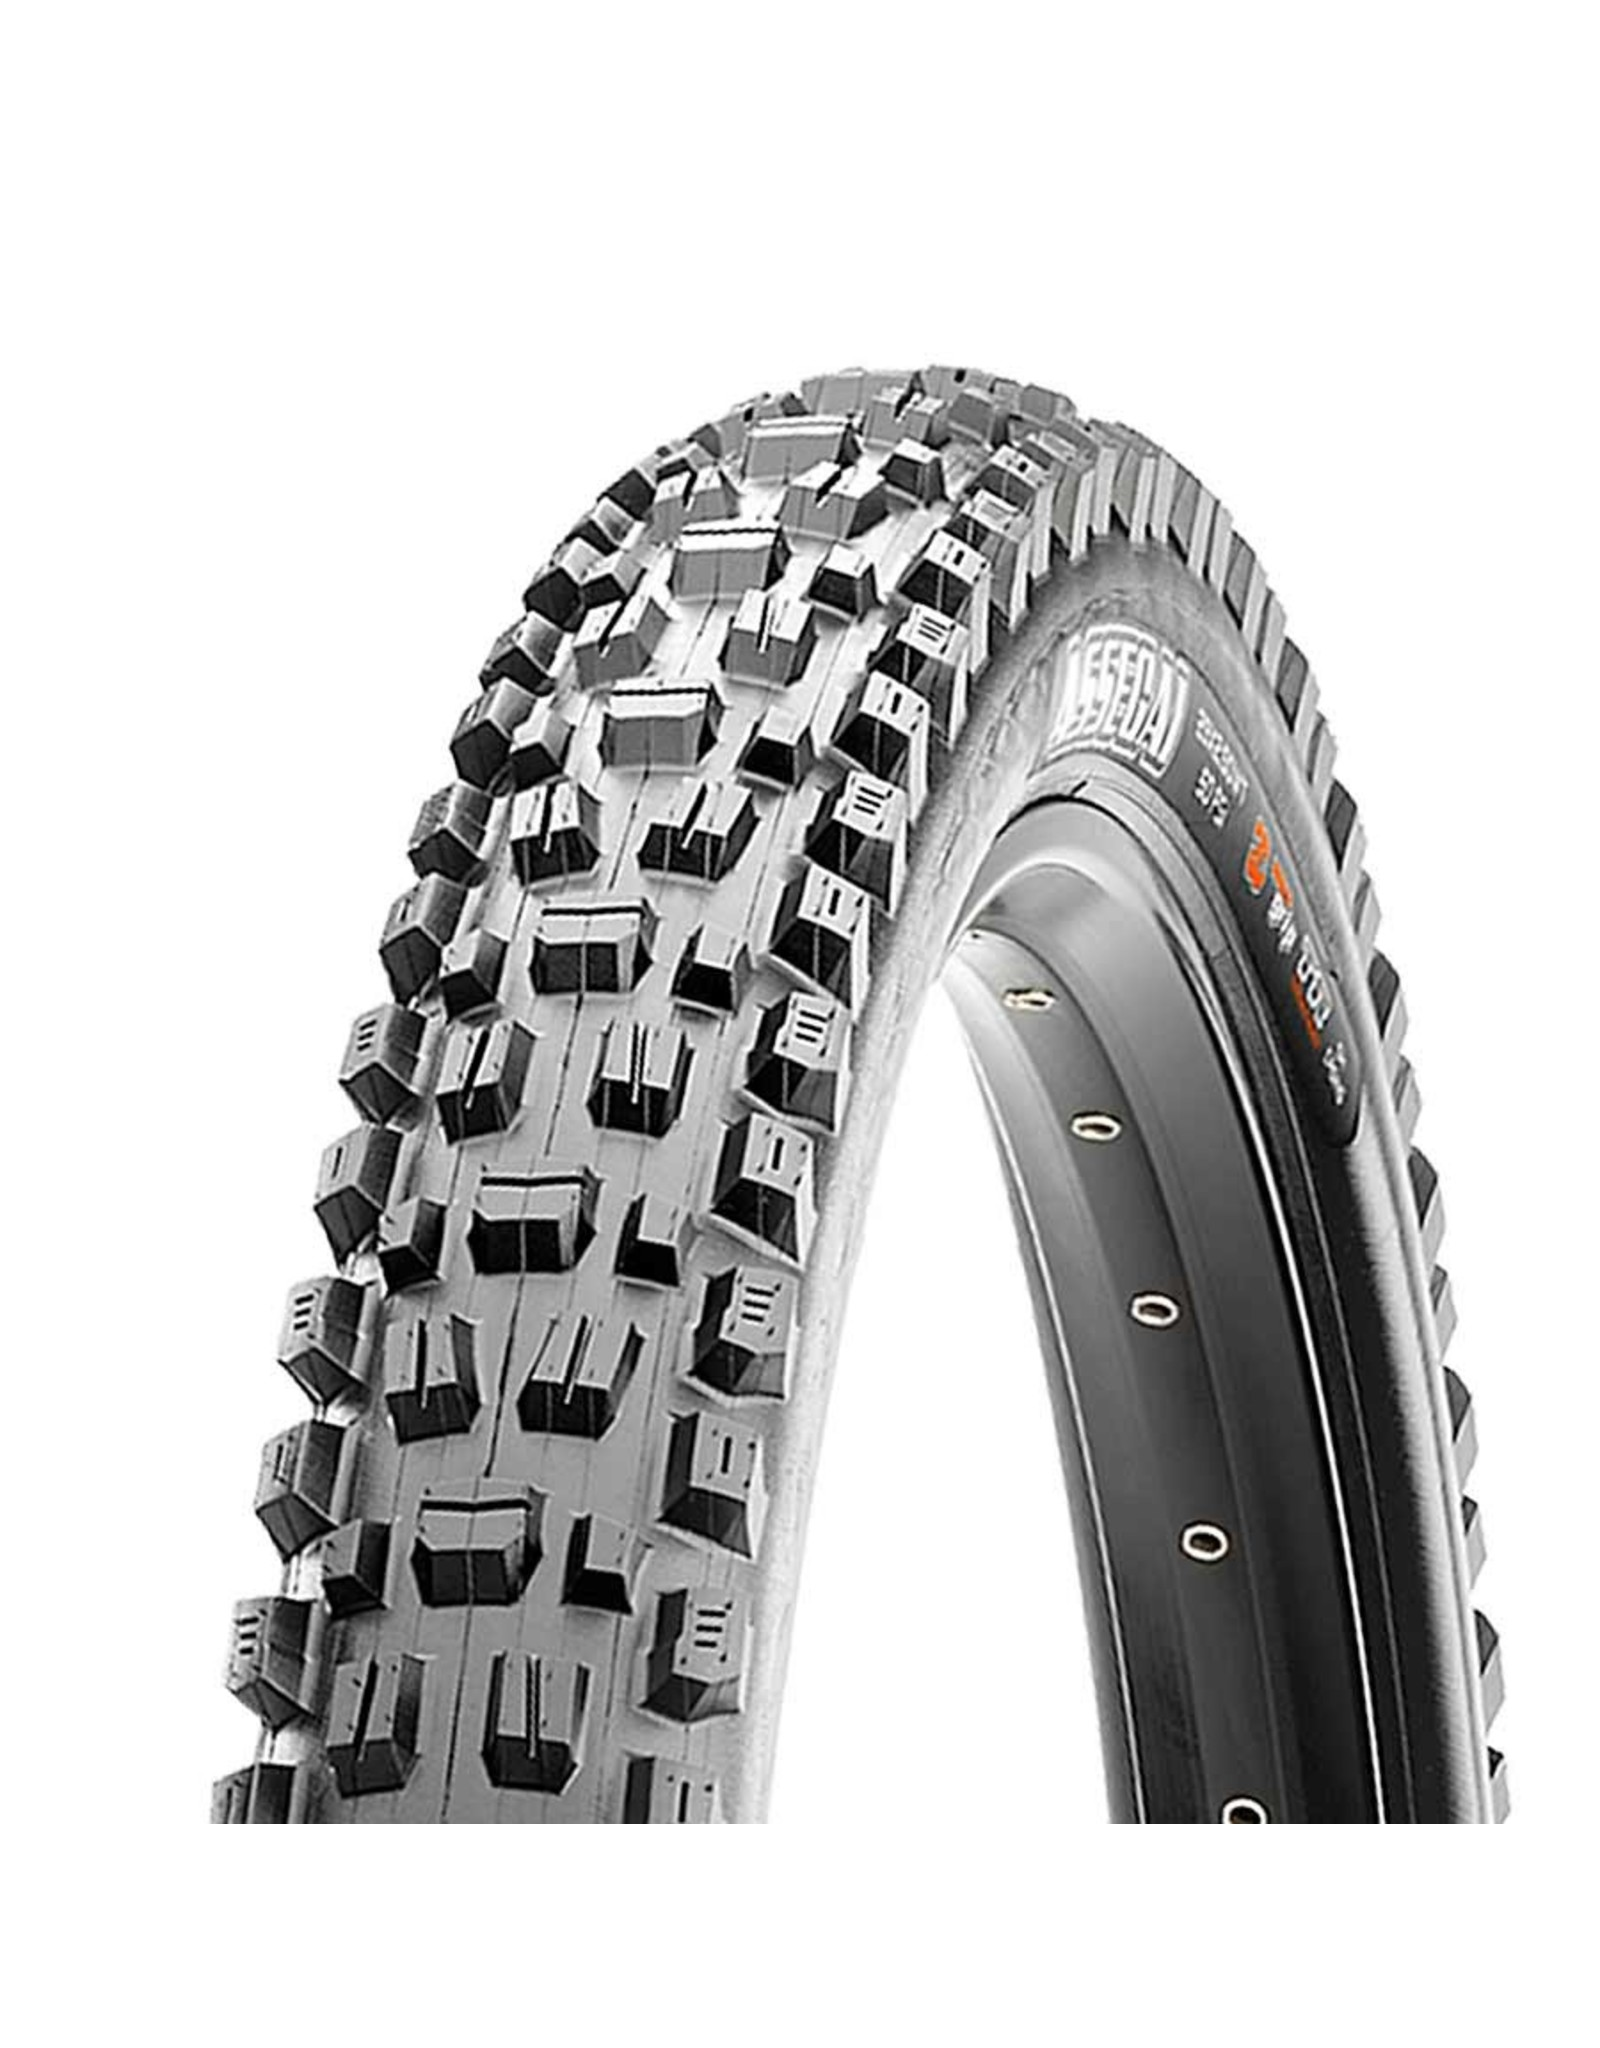 Maxxis, Assegai, Tire, 27.5''x2.50, Folding, Tubeless Ready, 3C Maxx Grip, 2-ply, Wide Trail, 60TPI, Black